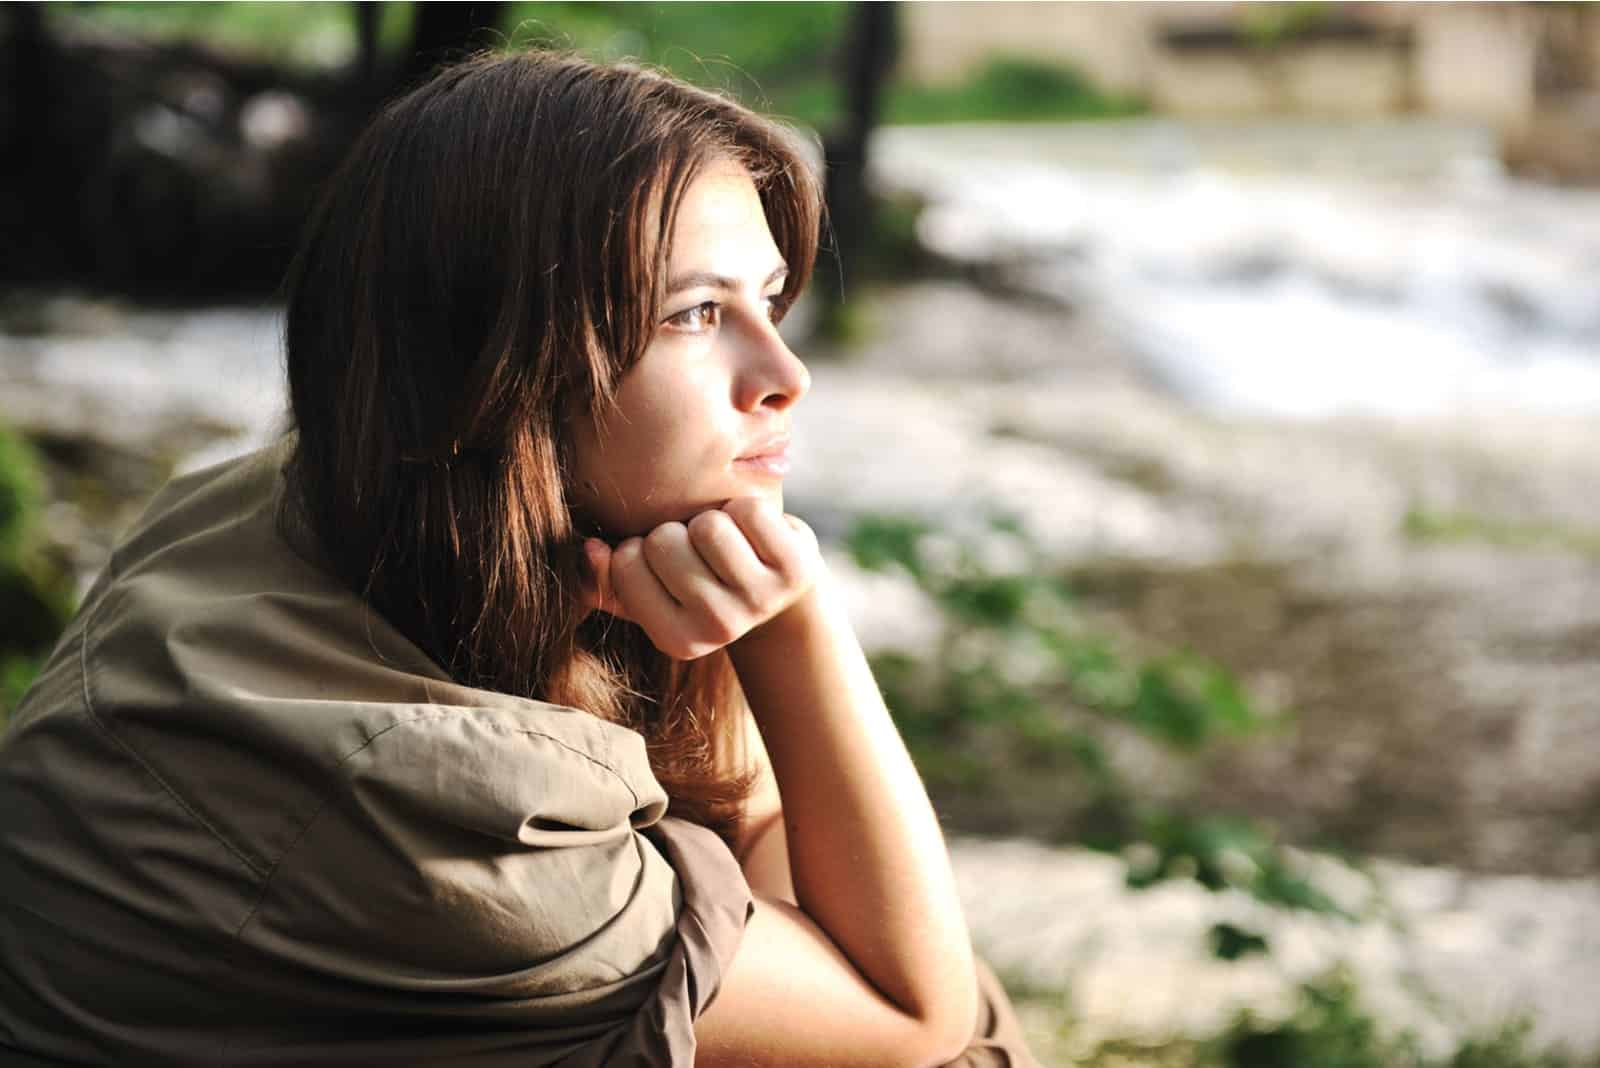 lonely pensive woman sitting alone in nature